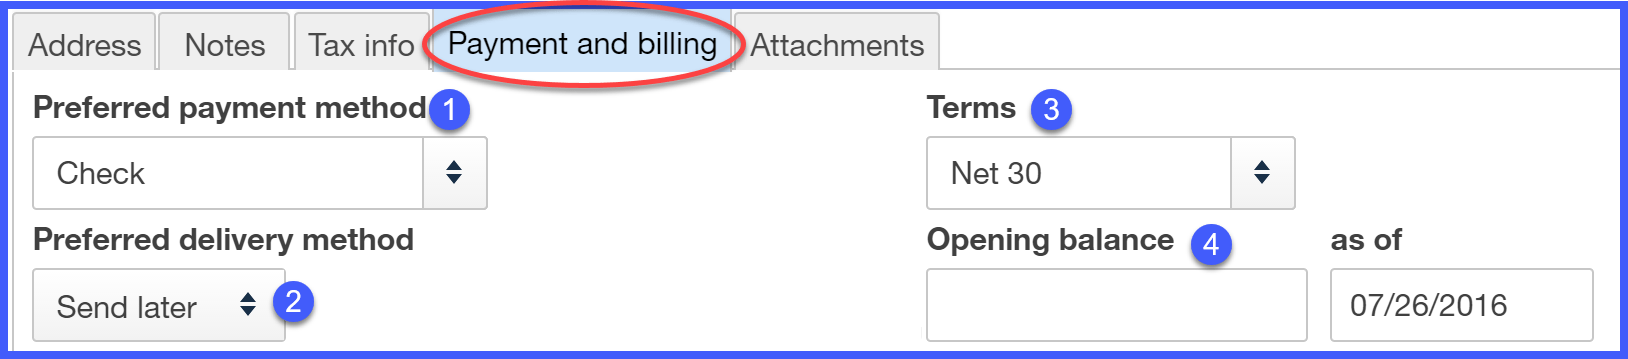 QuickBooks Online Payment and Billing Information Window